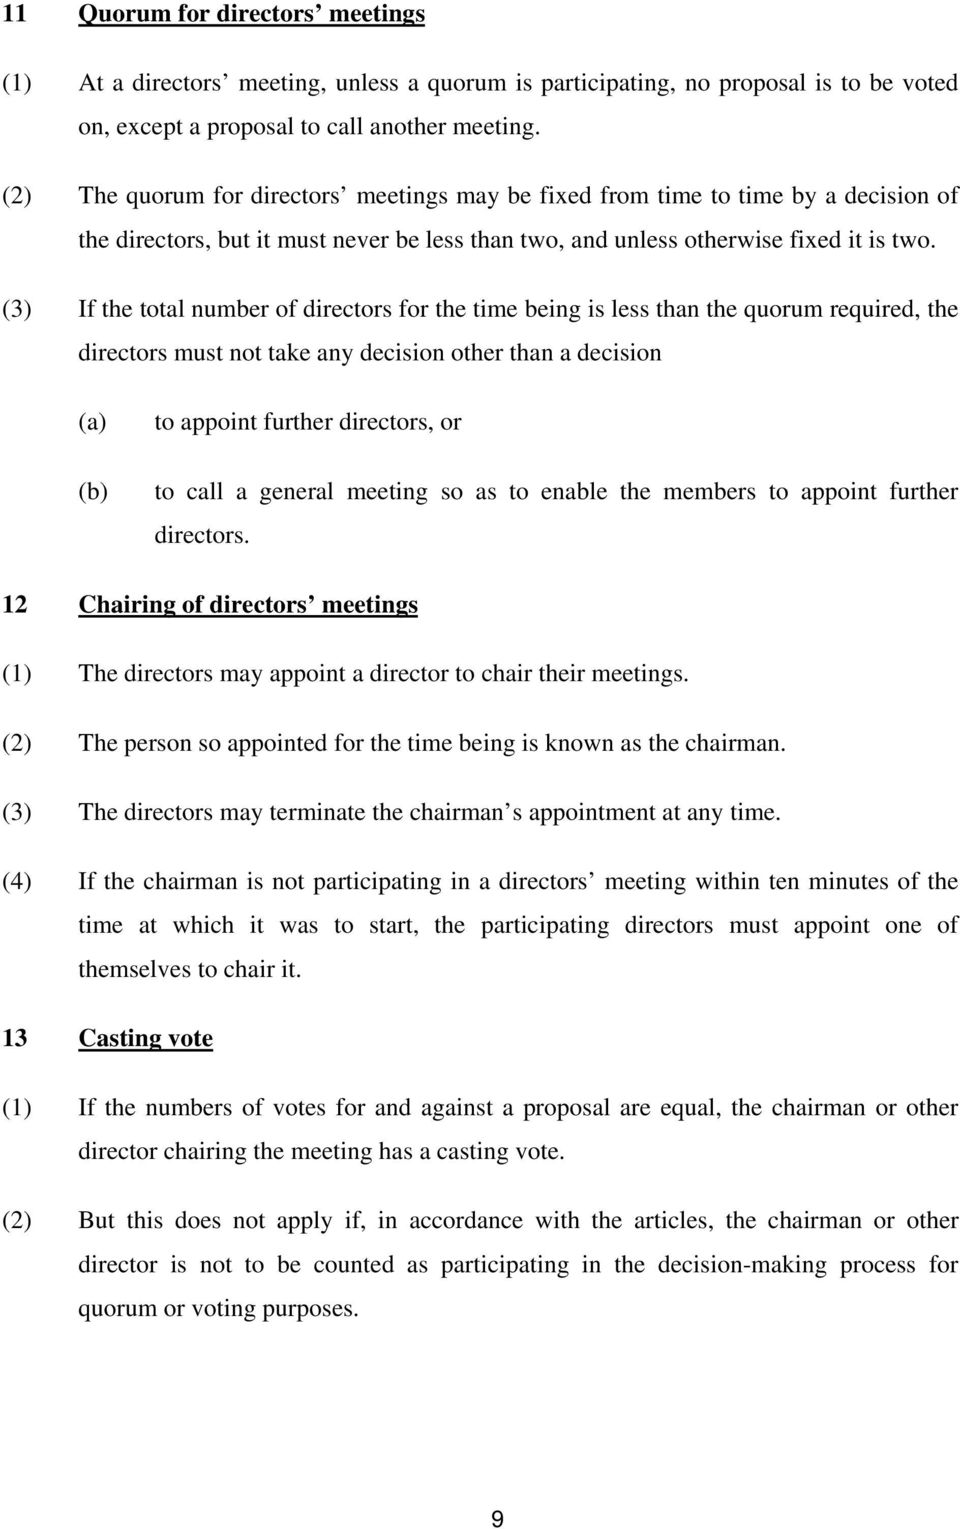 (3) If the total number of directors for the time being is less than the quorum required, the directors must not take any decision other than a decision to appoint further directors, or to call a